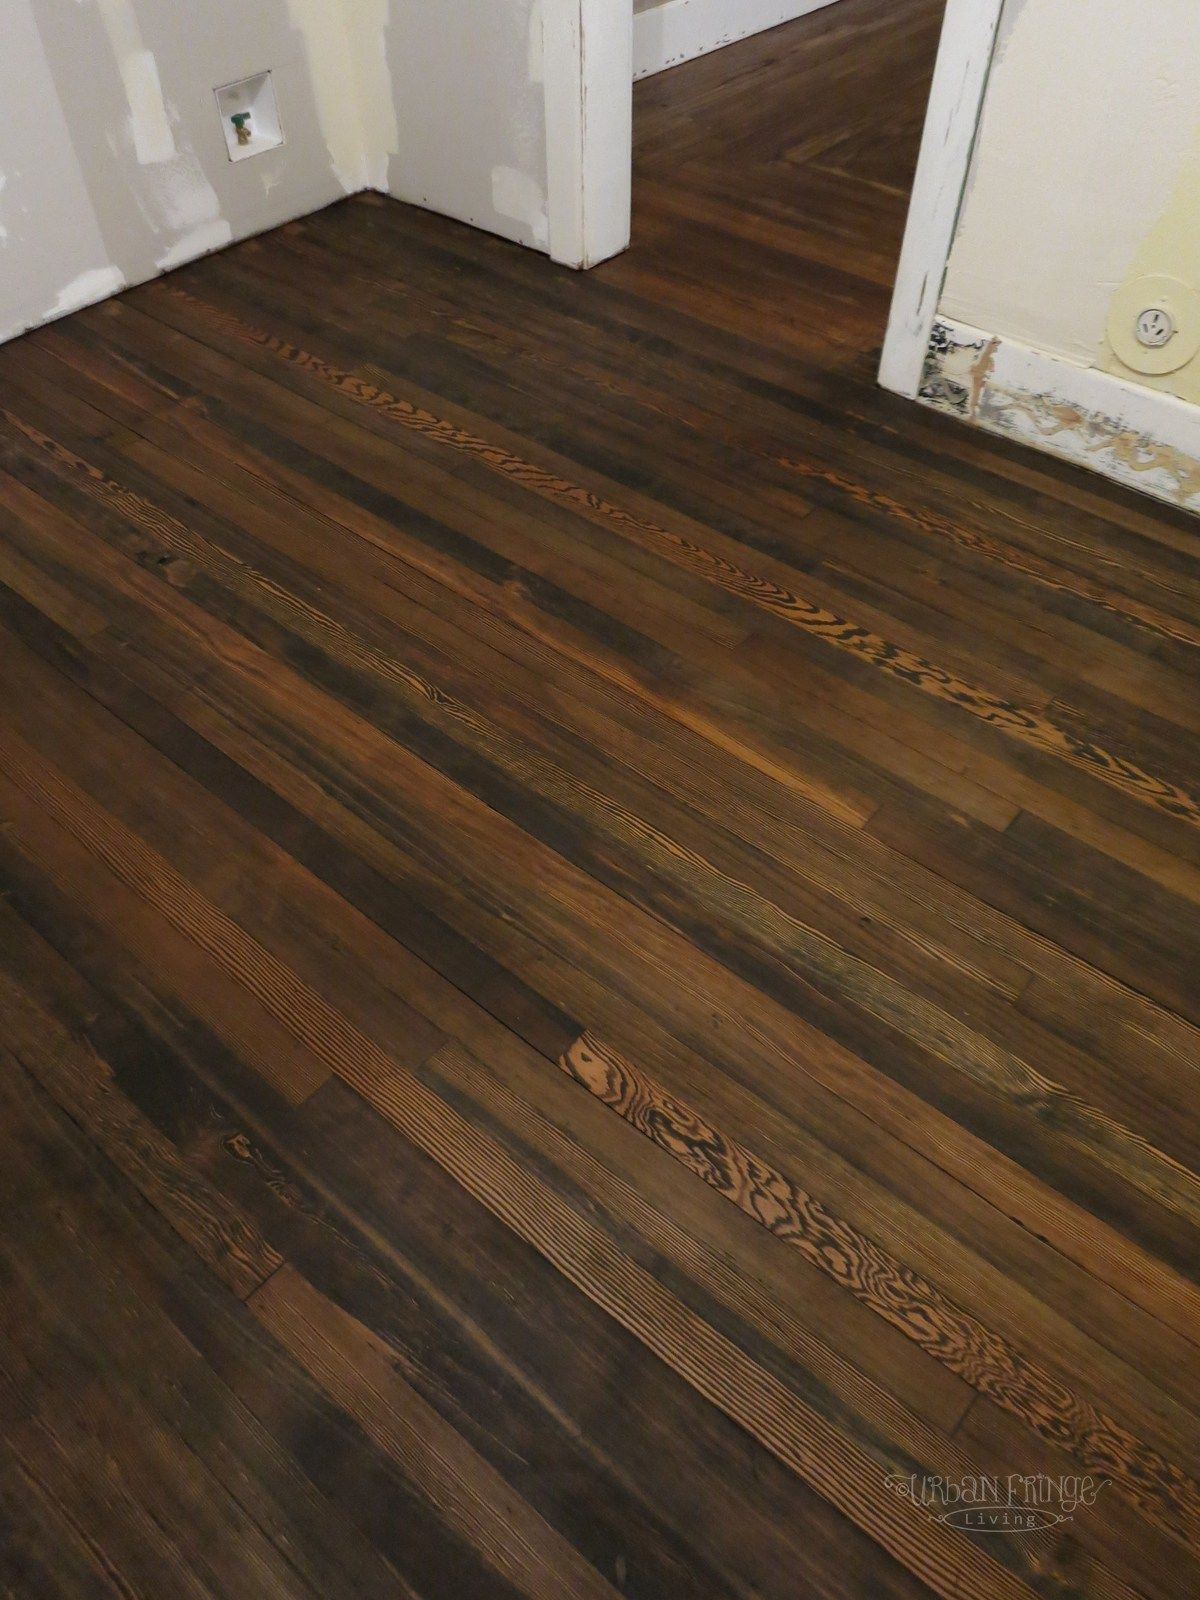 Minwax Jacobean On Red Oak Floors Google Search Home